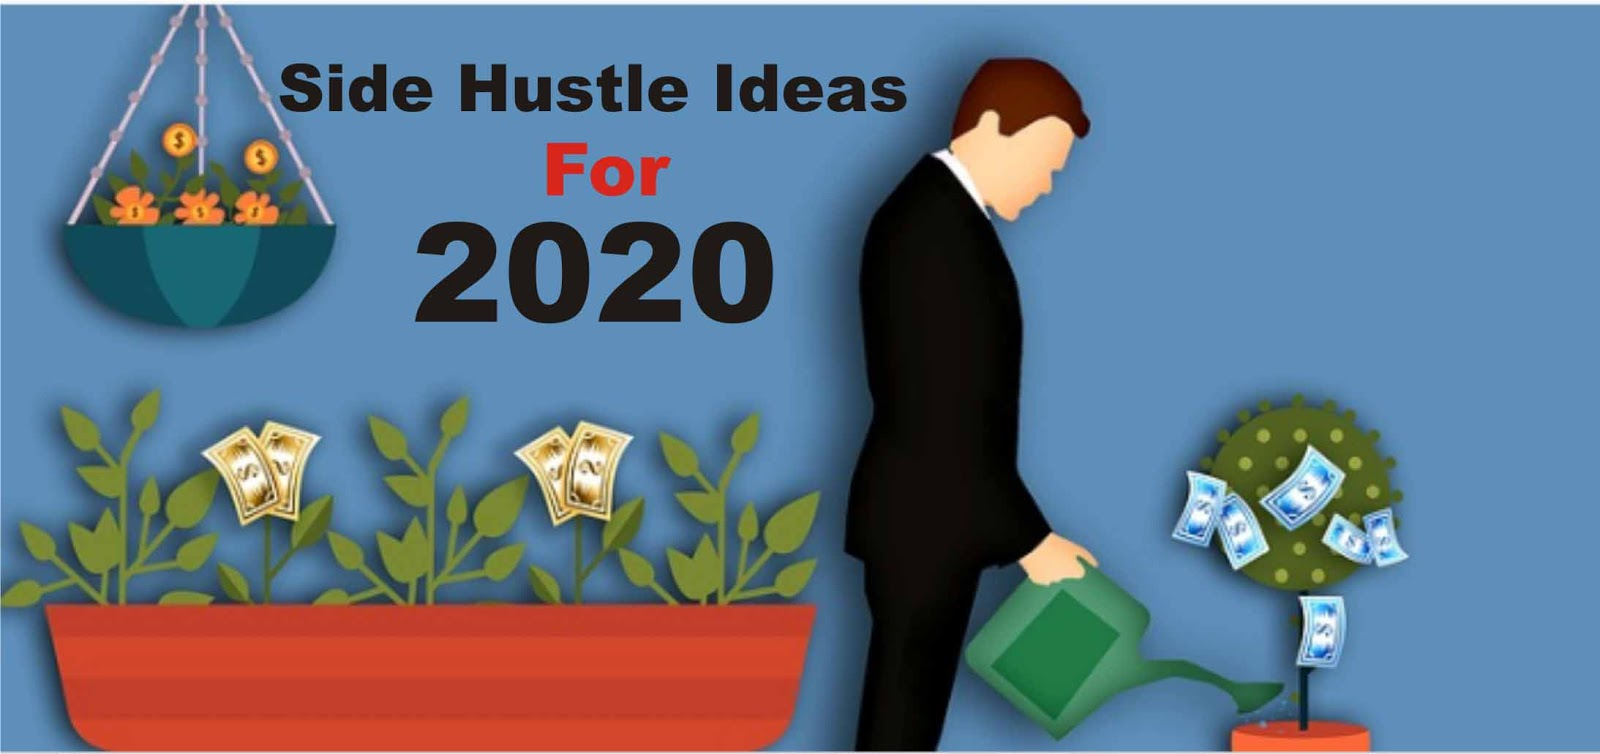 Hustle Ideas For 2020